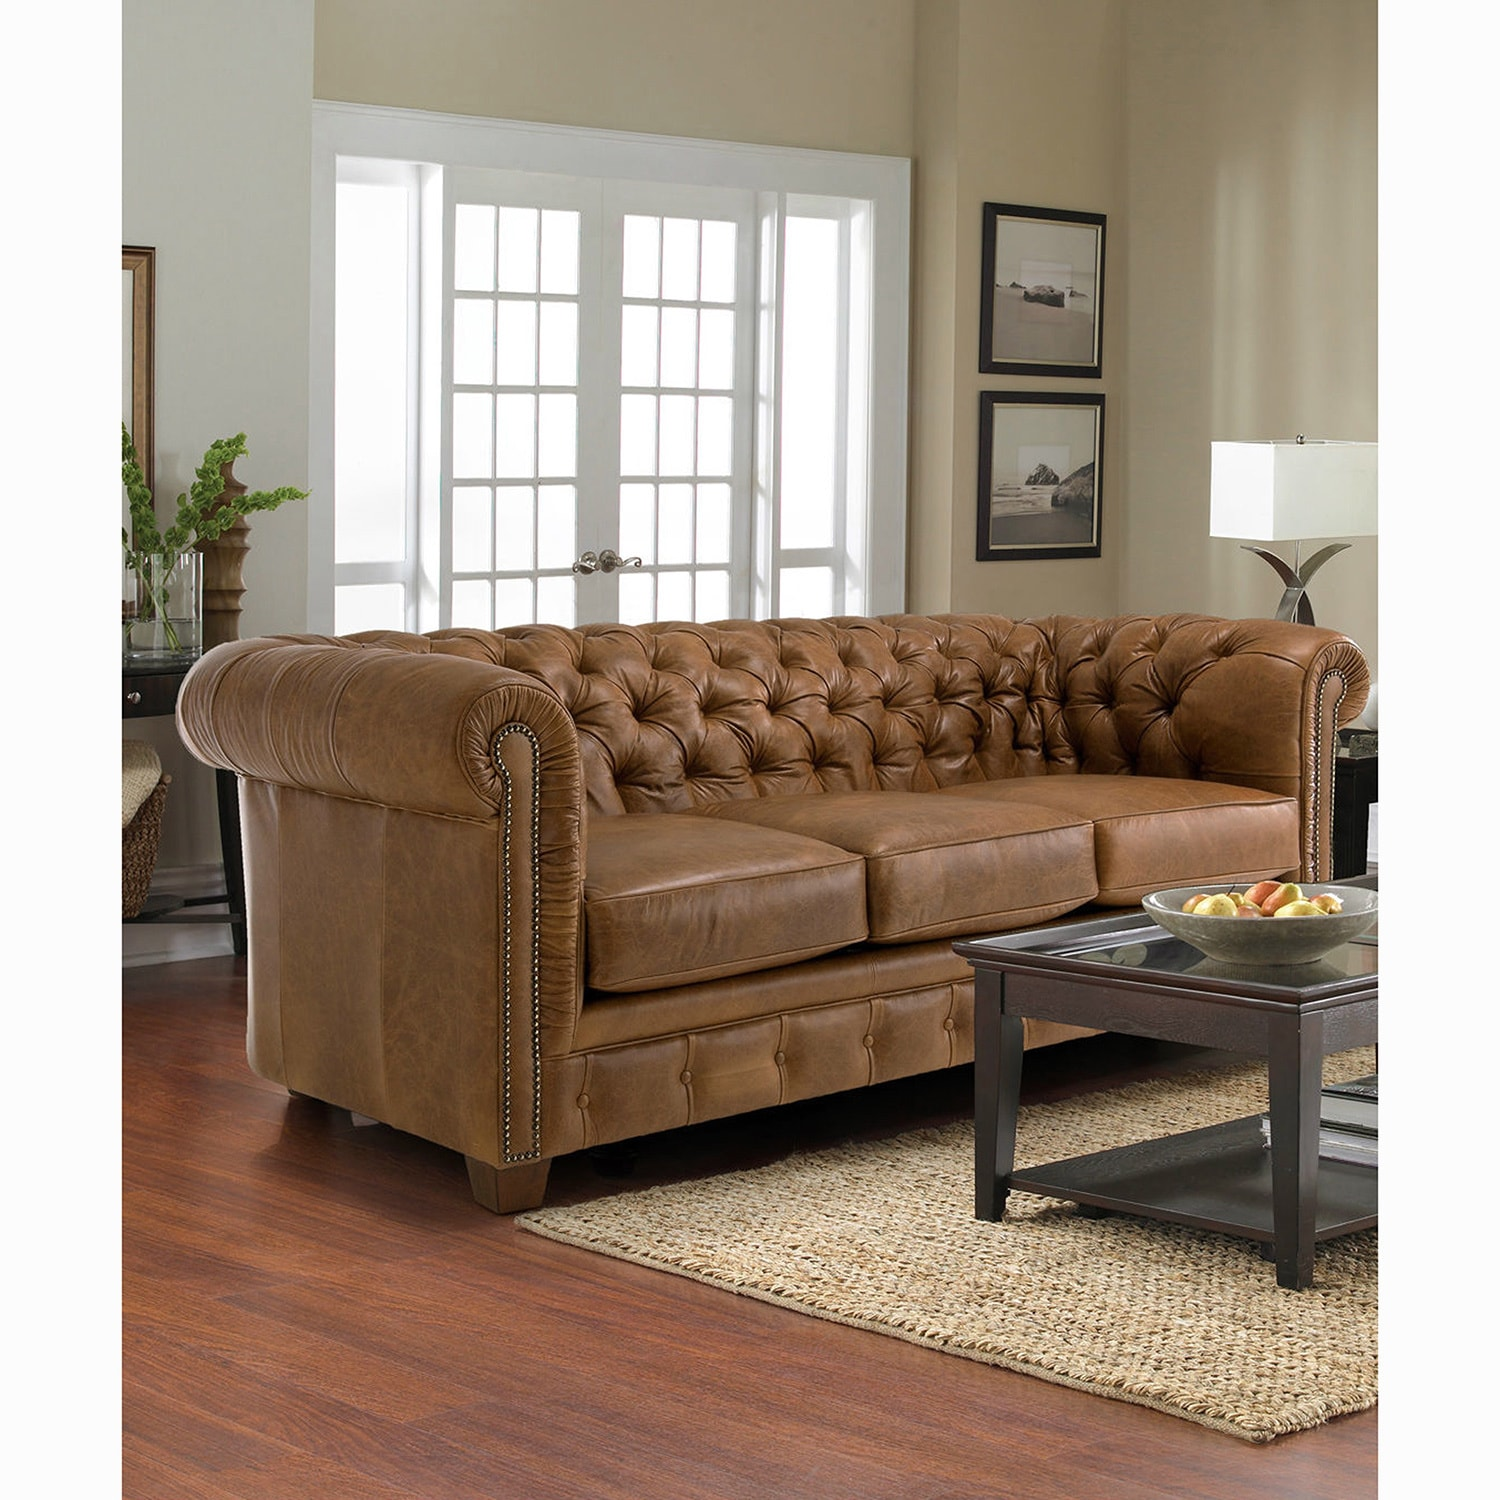 Charming Hancock Tufted Distressed Saddle Brown Italian Chesterfield Leather Sofa    Free Shipping Today   Overstock   15472806